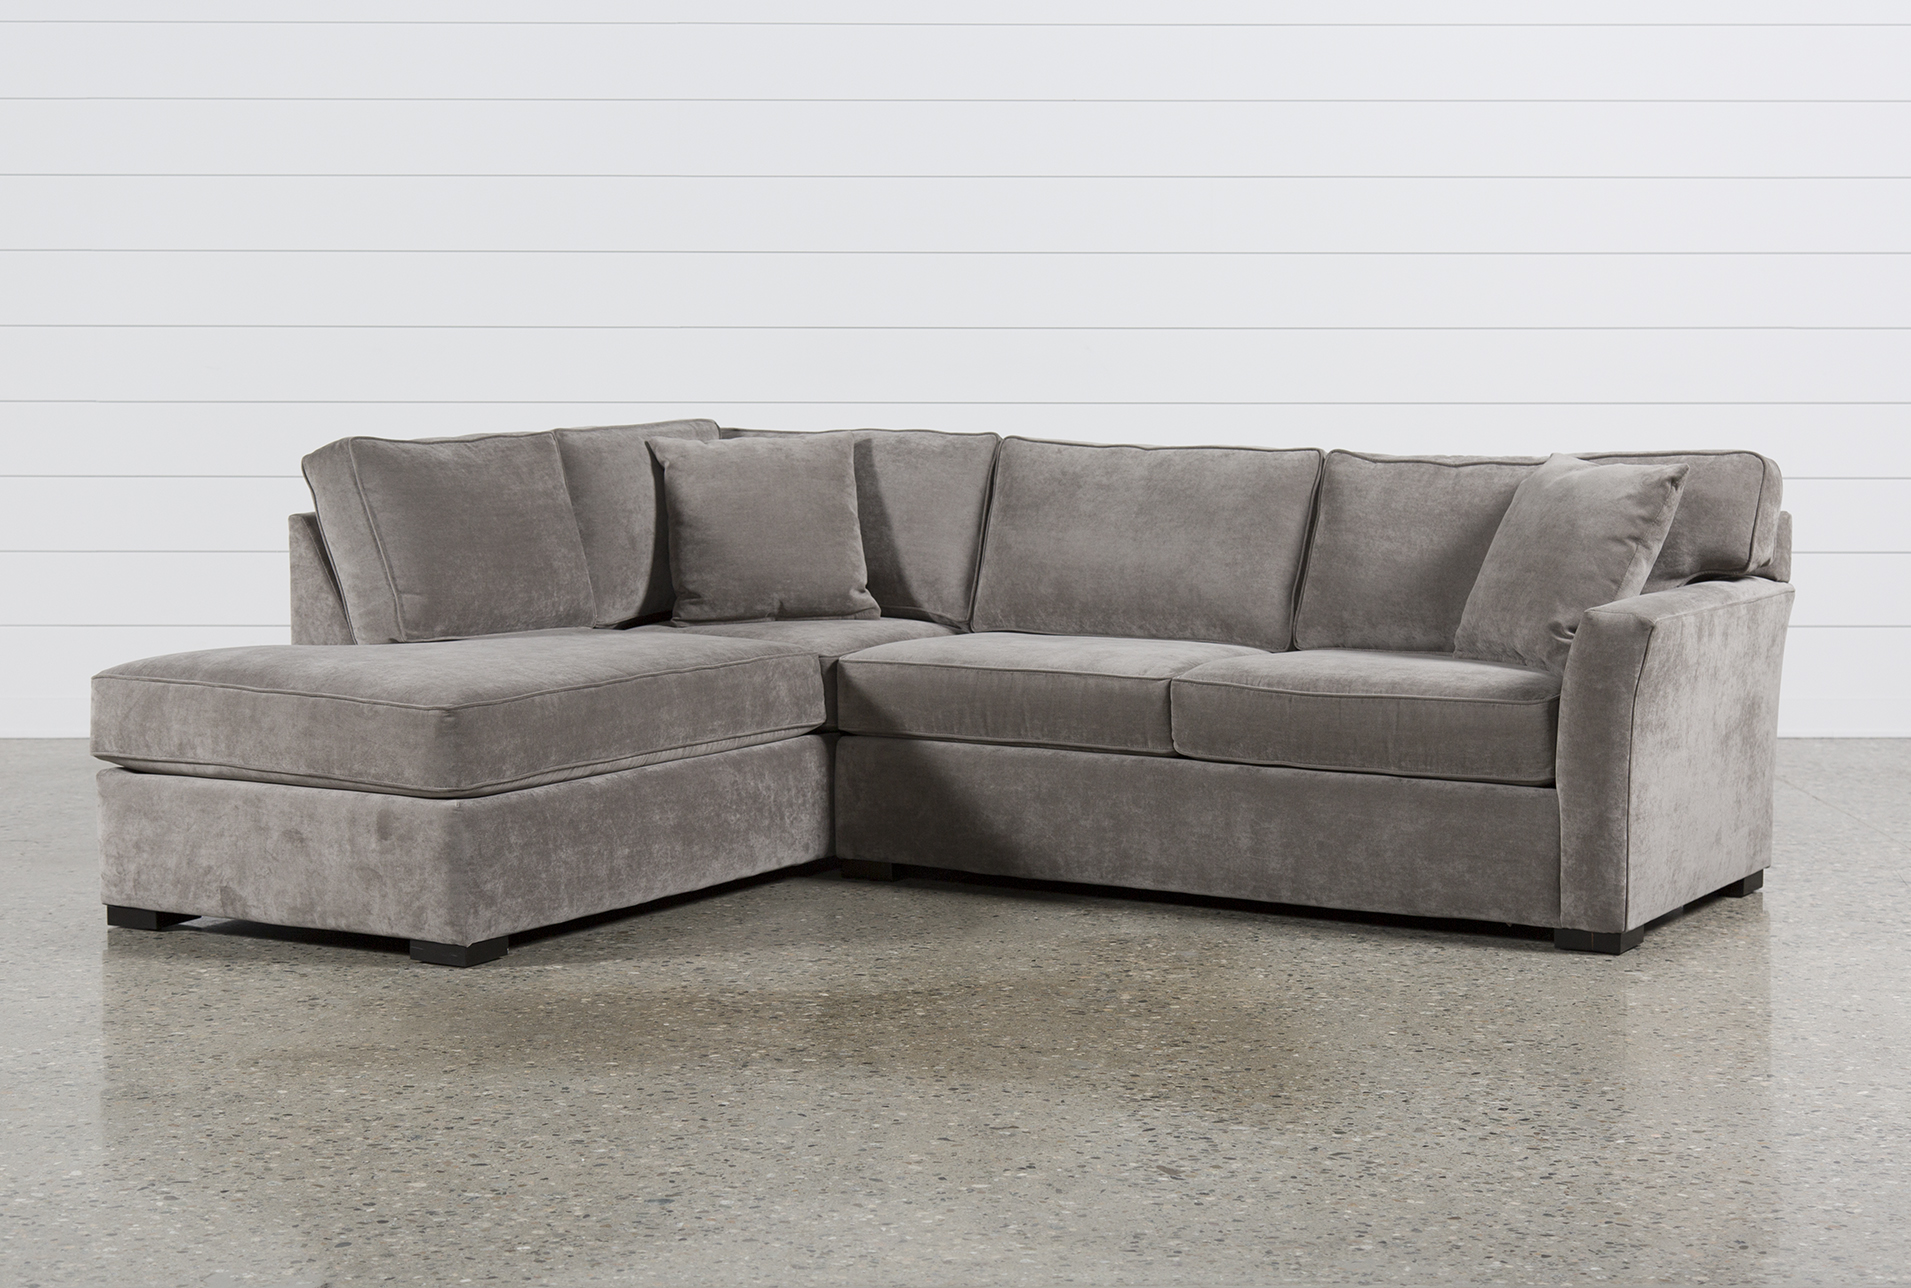 Aspen 2 Piece Sleeper Sectional W/Laf Chaise (Qty: 1) has been successfully  added to your Cart.